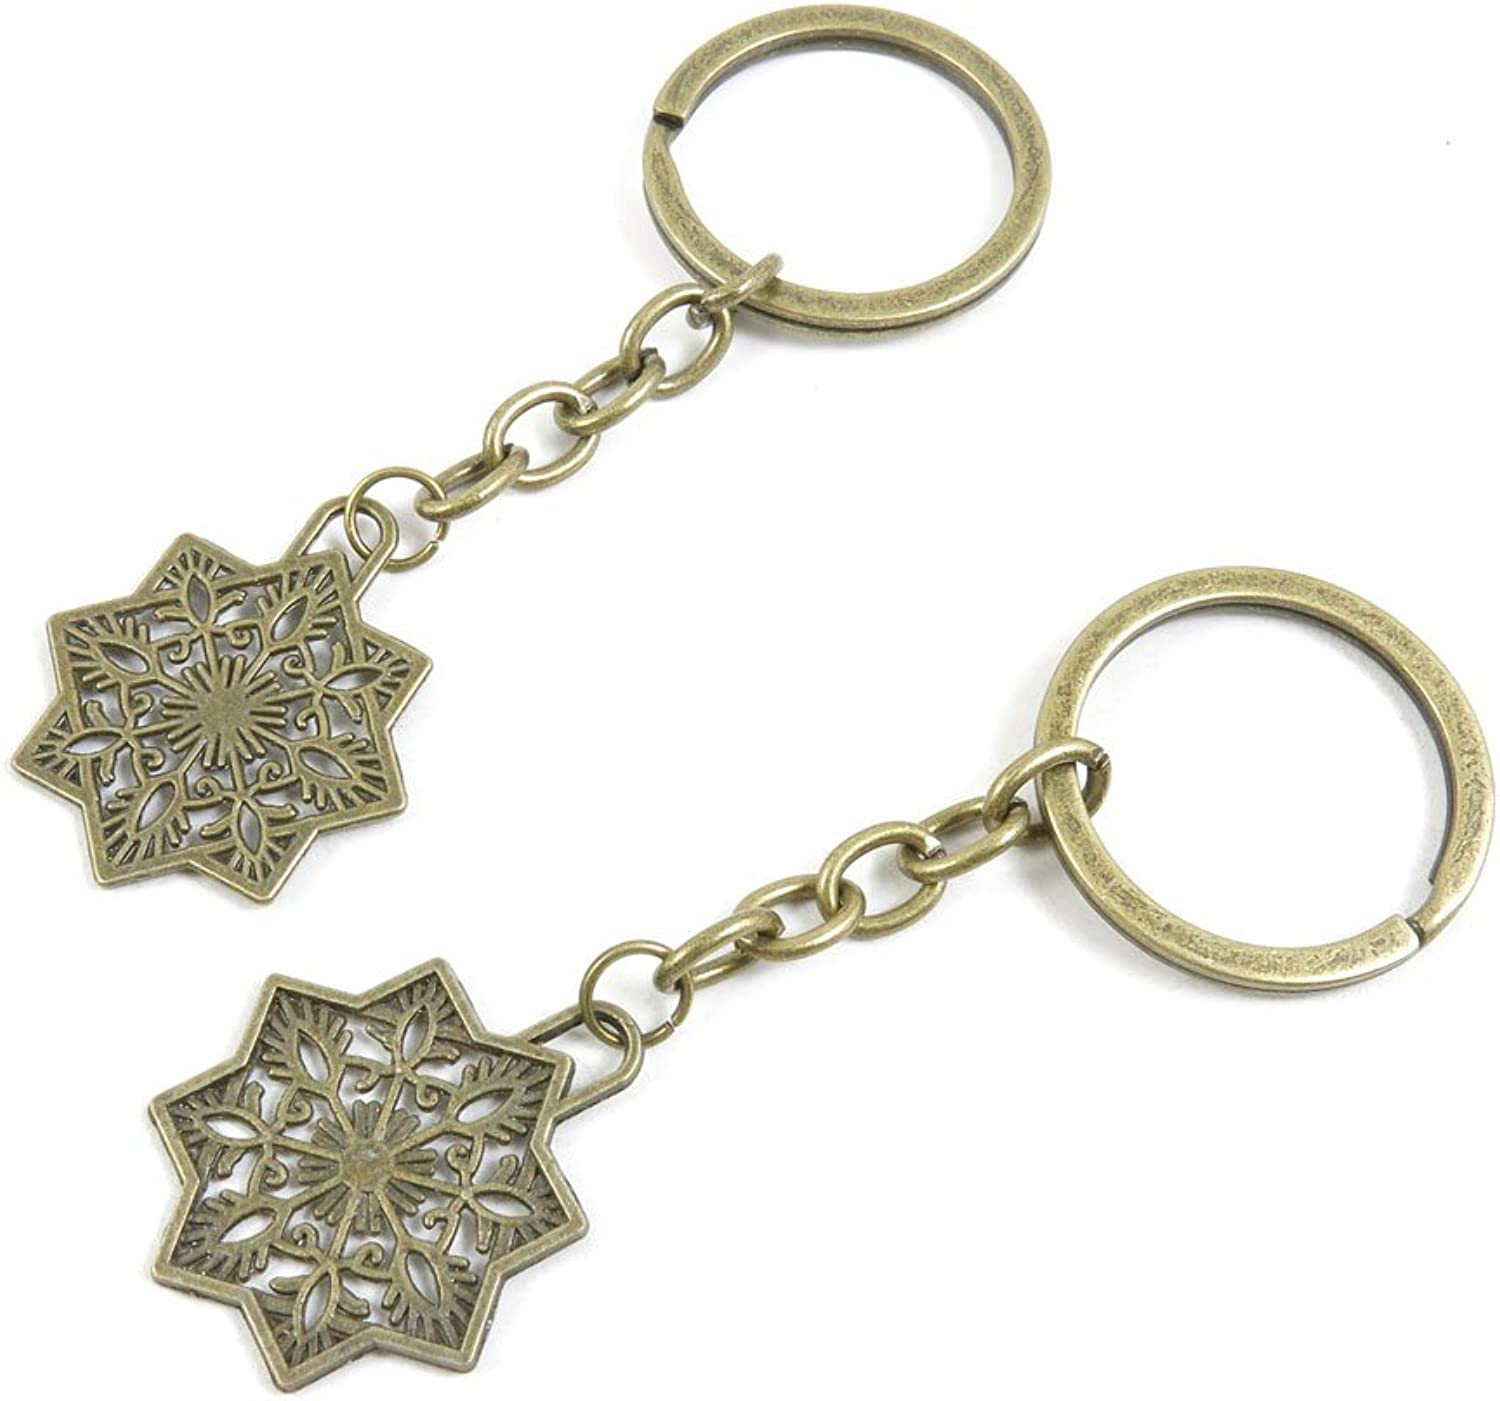 220 Pieces Fashion Jewelry Keyring Keychain Door Car Key Tag Ring Chain Supplier Supply Wholesale Bulk Lots H9RO3 Snow Flower